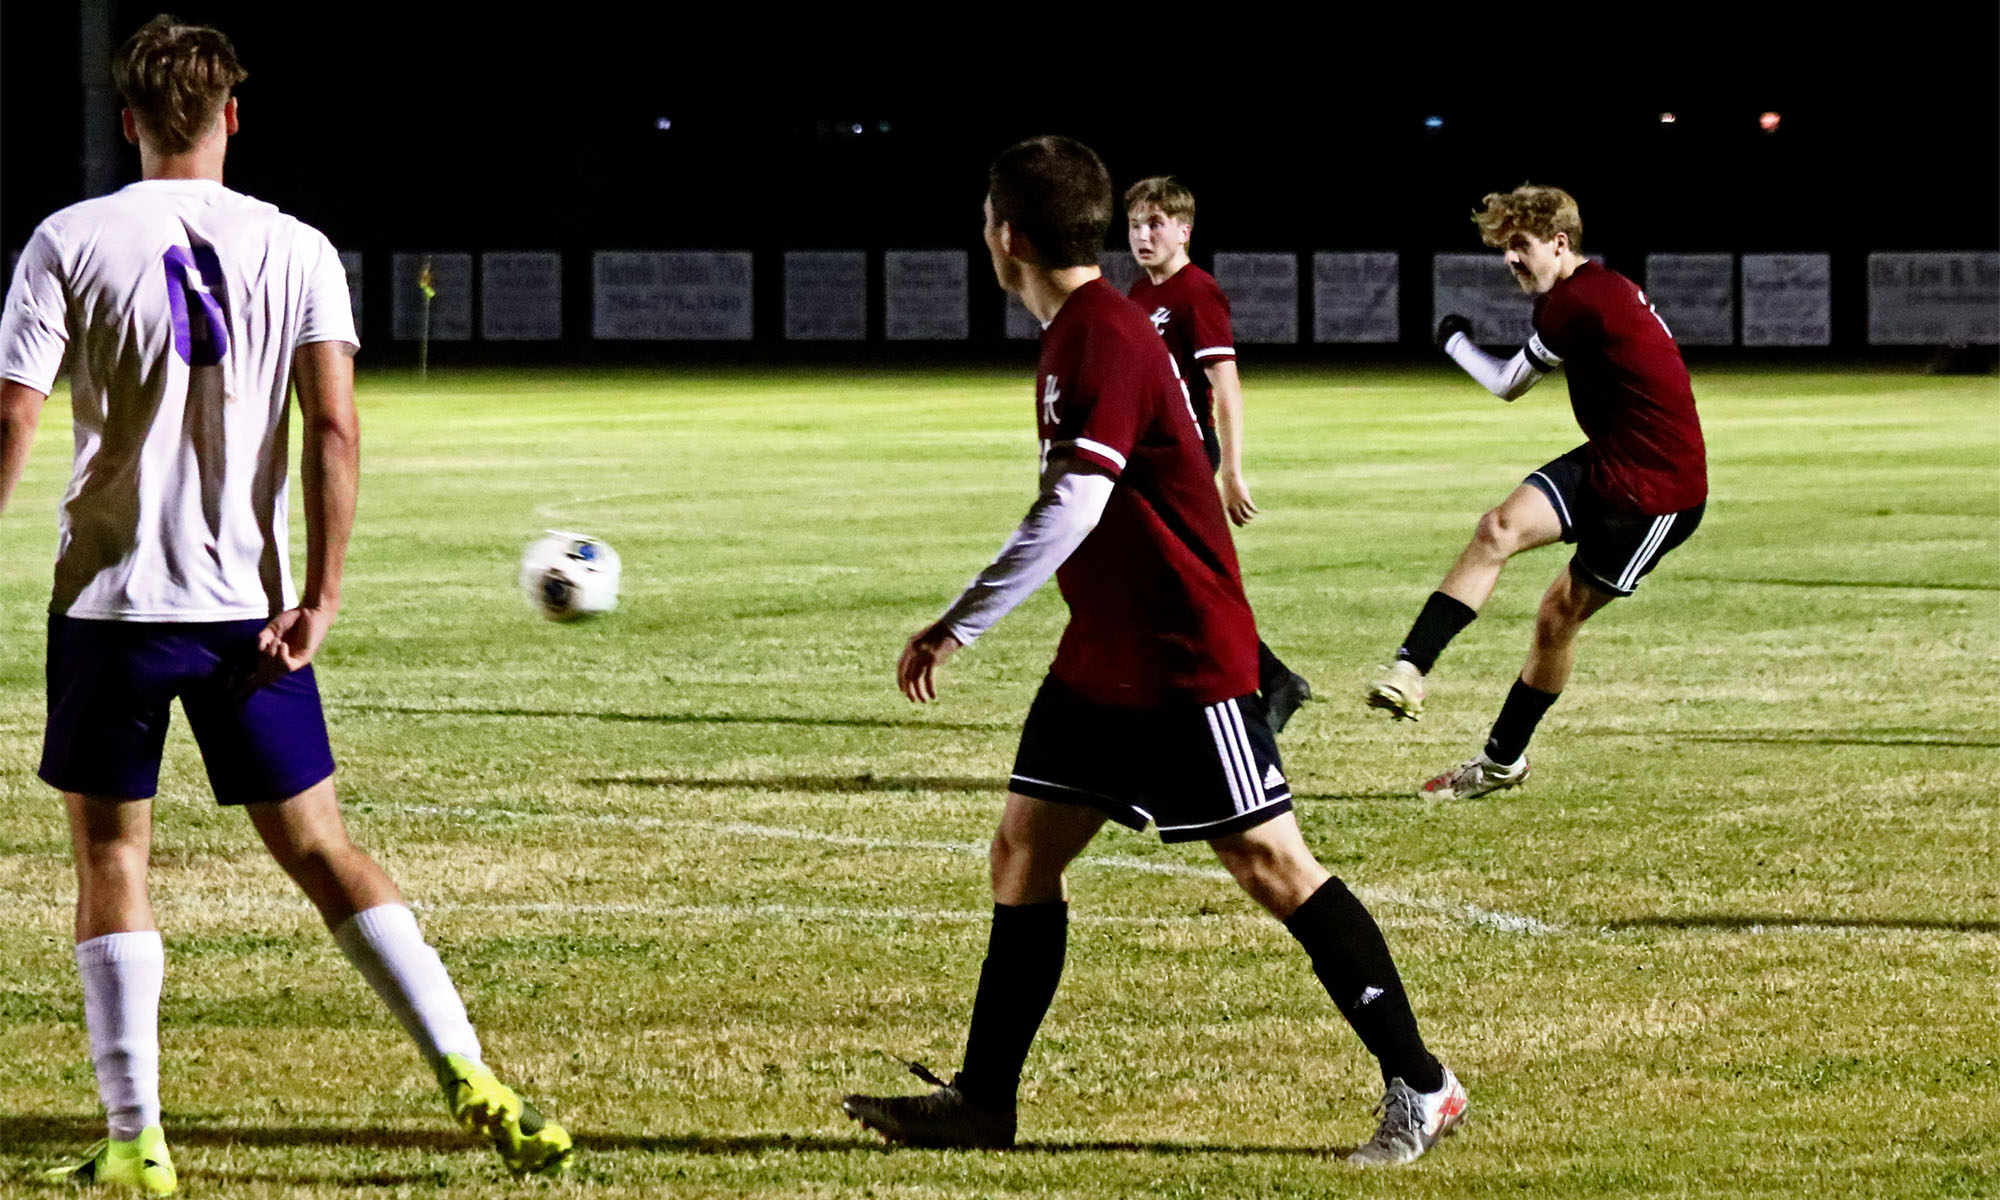 Hartselle earns first play-off win with victory over Springville